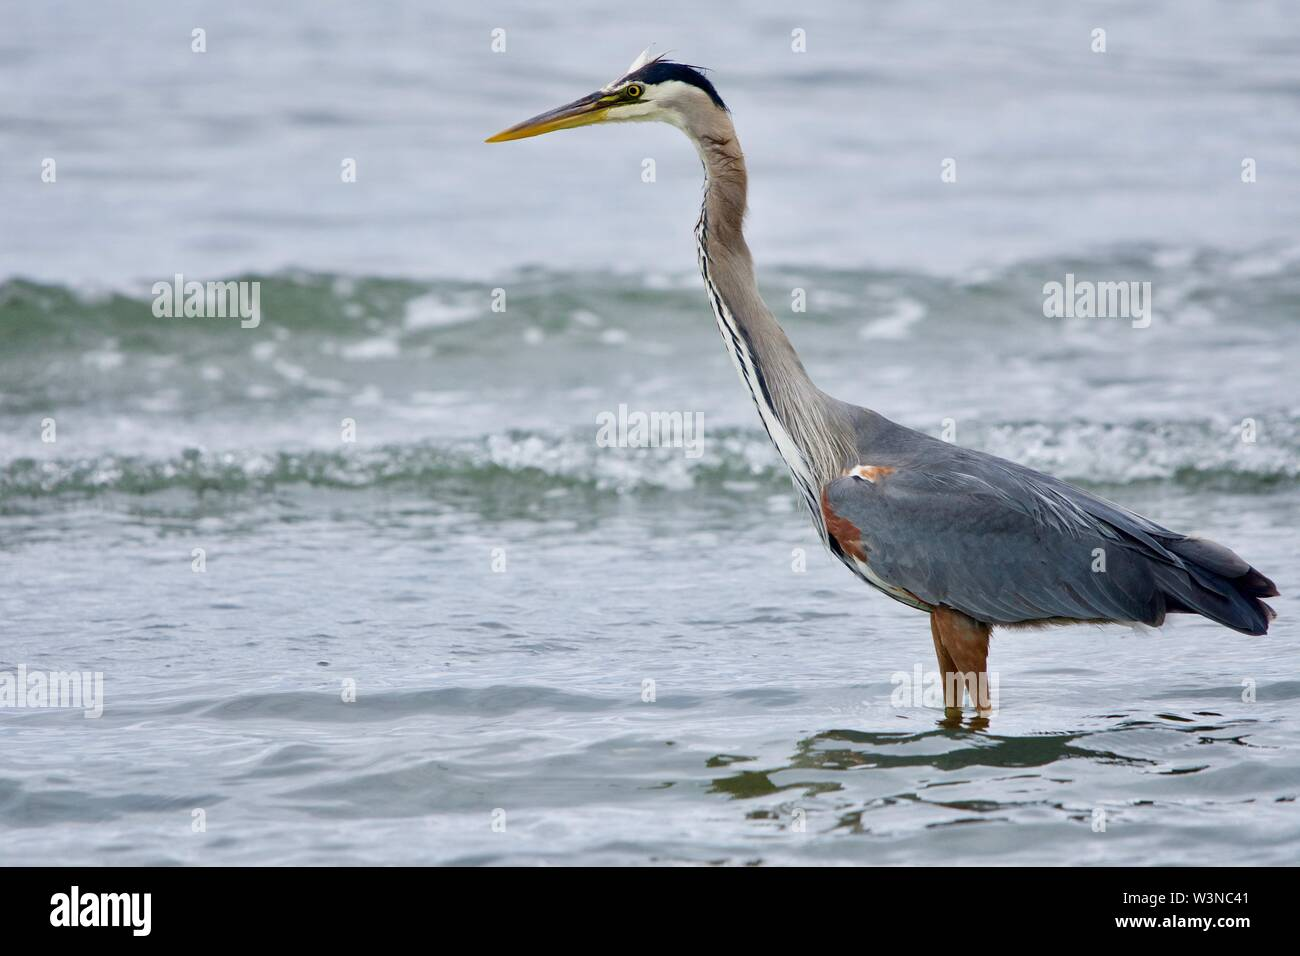 Standing in the shallows, a heron extends its neck as it searches for prey, Witty's Lagoon, Vancouver Island, British Columbia. - Stock Image